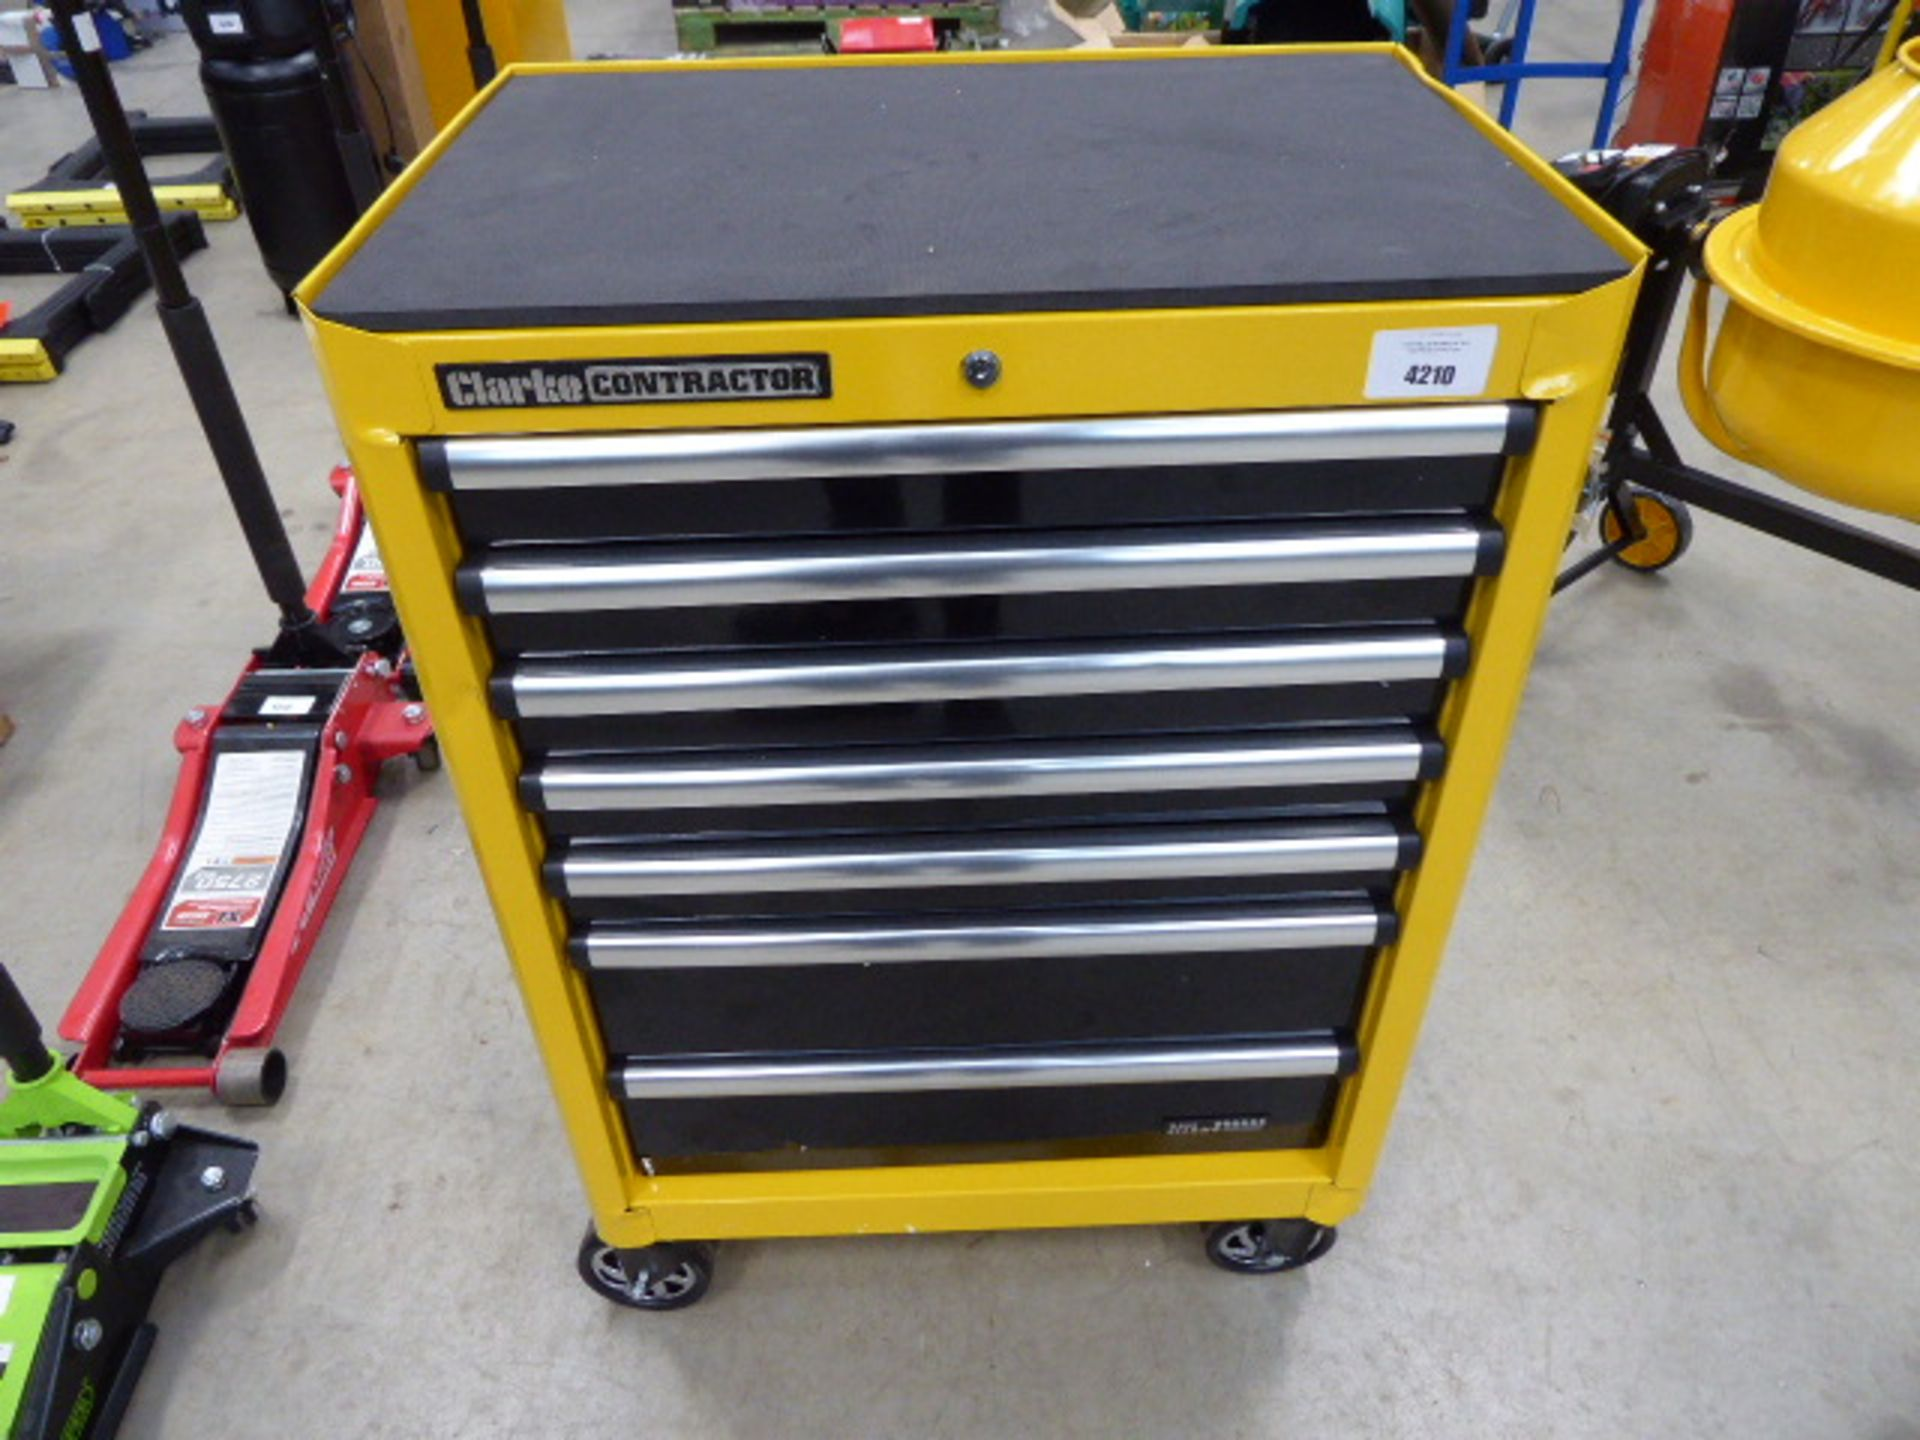 Clarke Contractor yellow wheeled multidrawer toolbox with key